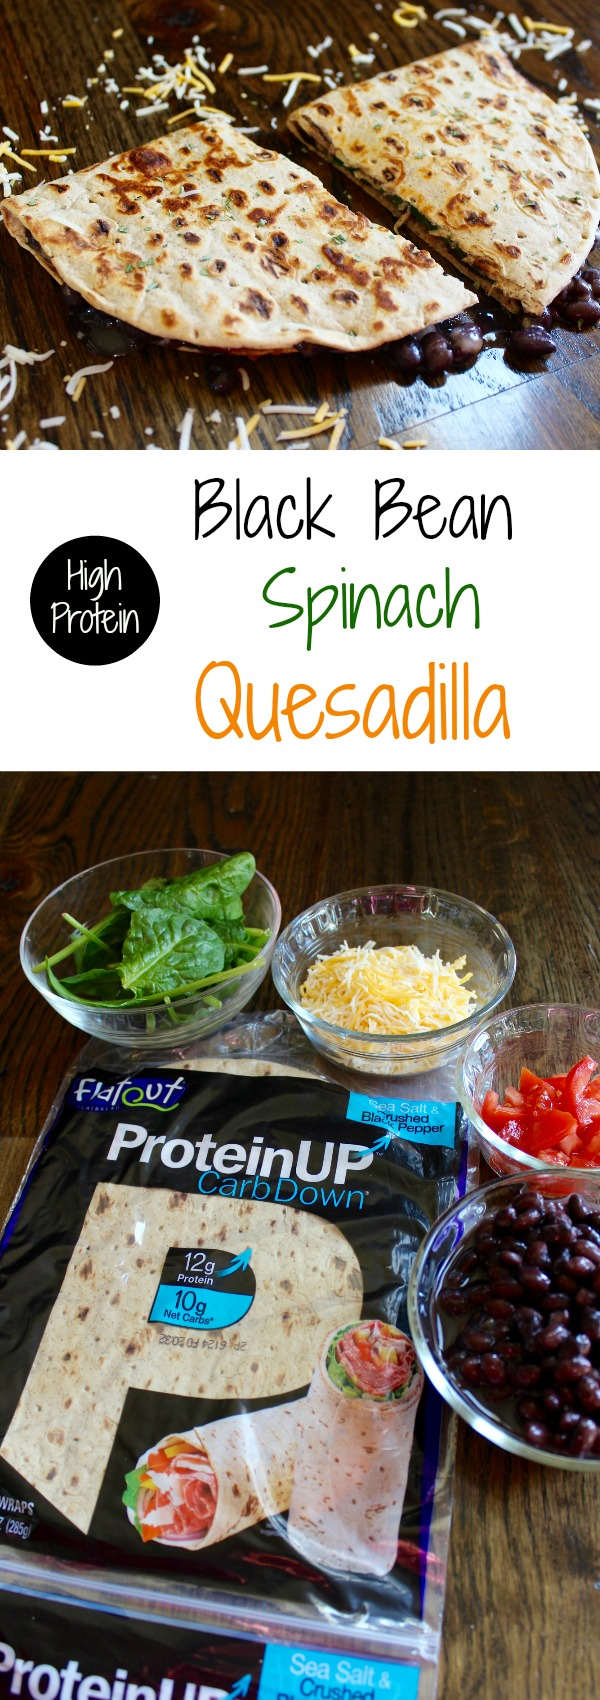 black-bean-spinach-quesadilla